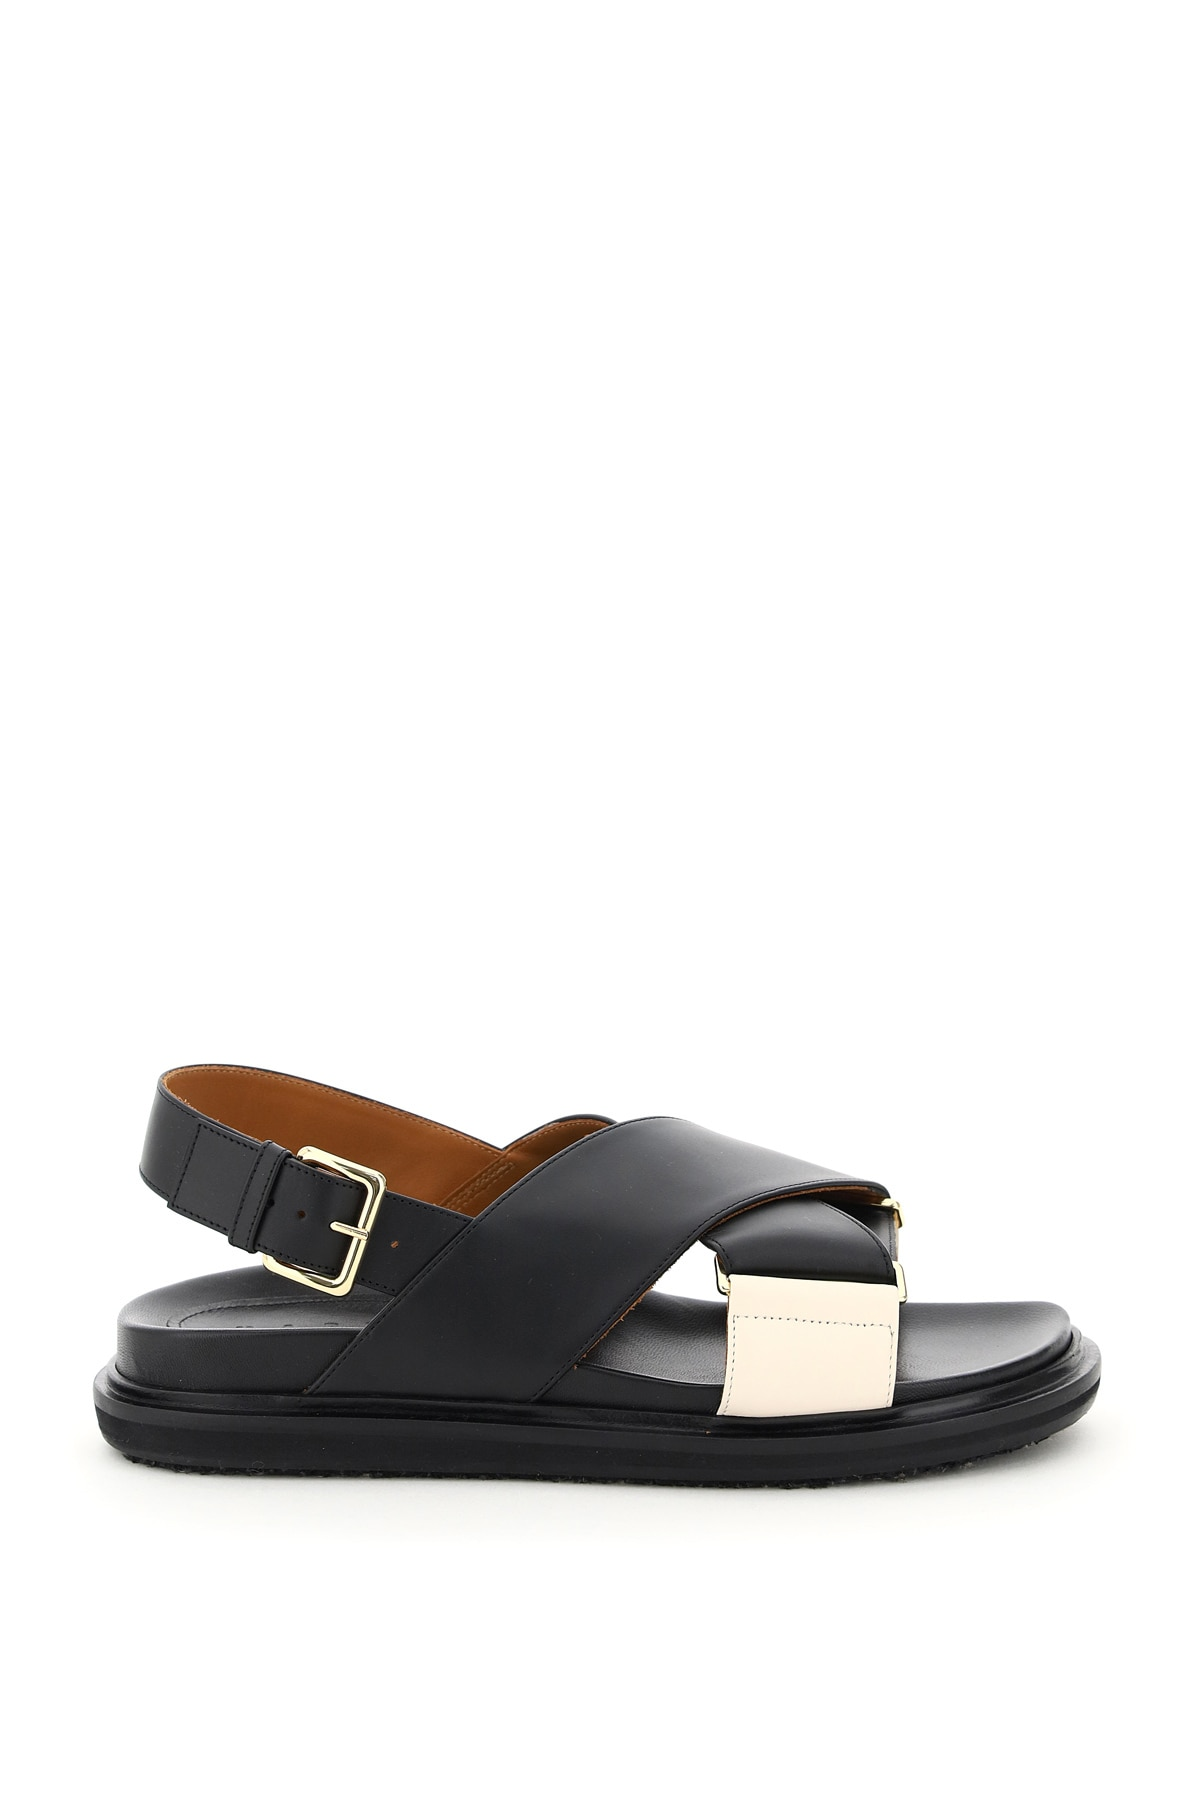 MARNI FUSSBETT LEATHER SANDALS 37 Black, White Leather